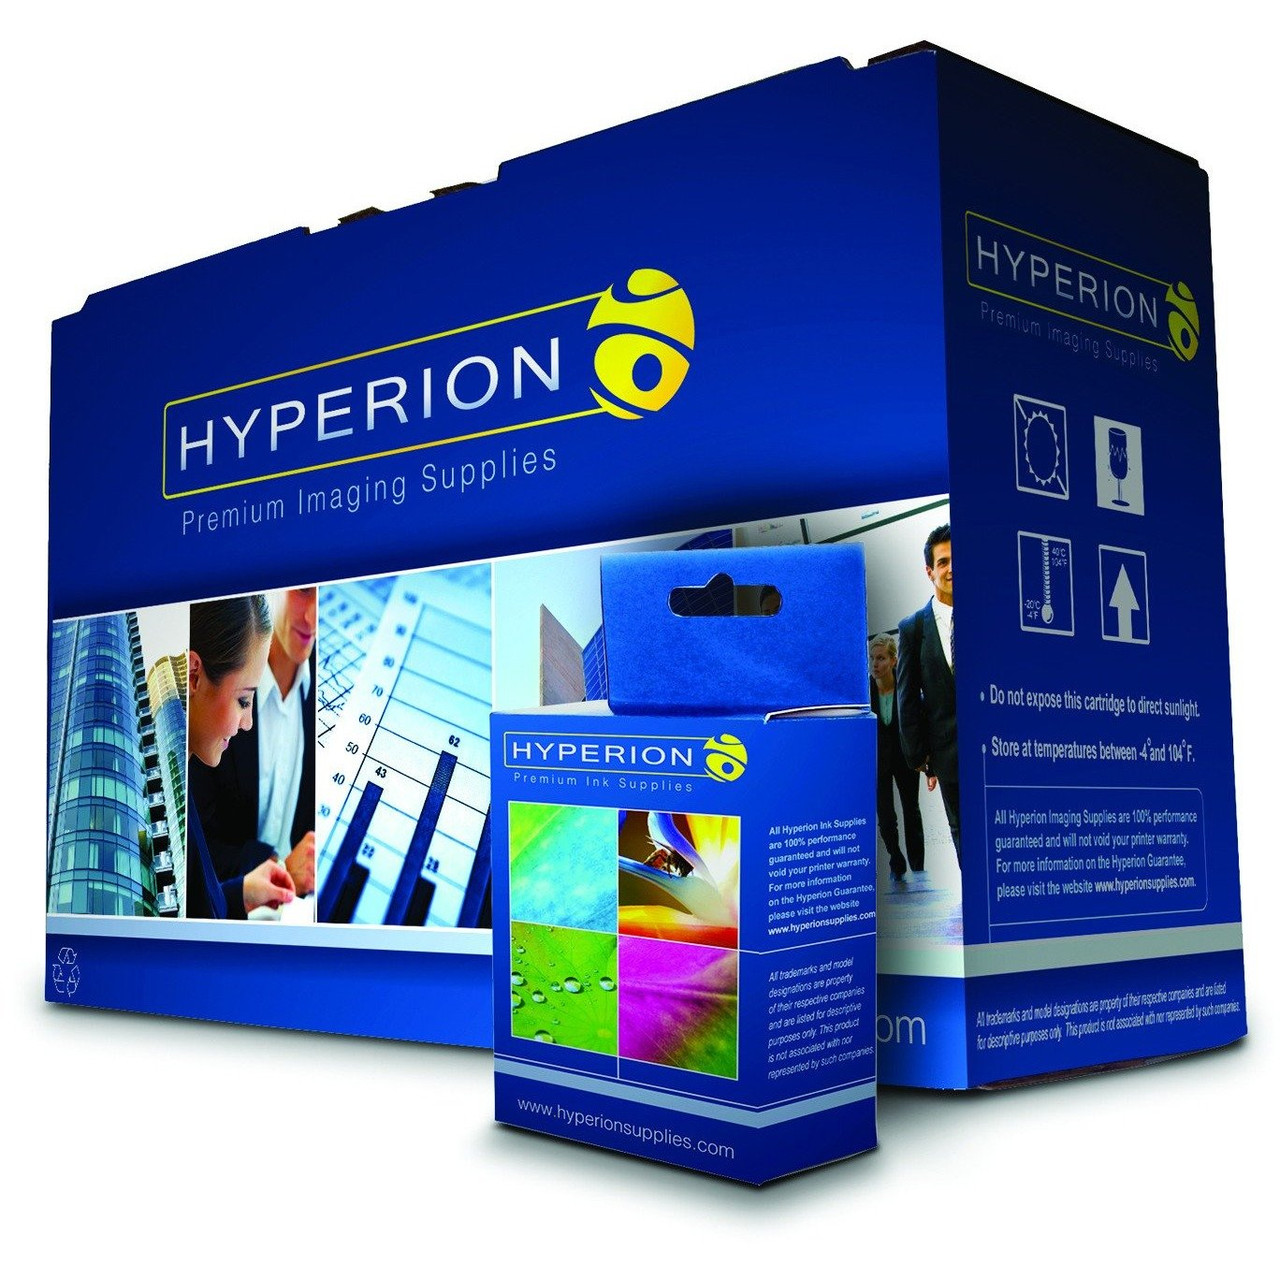 Hyperion Compatible WT860 Waste Container